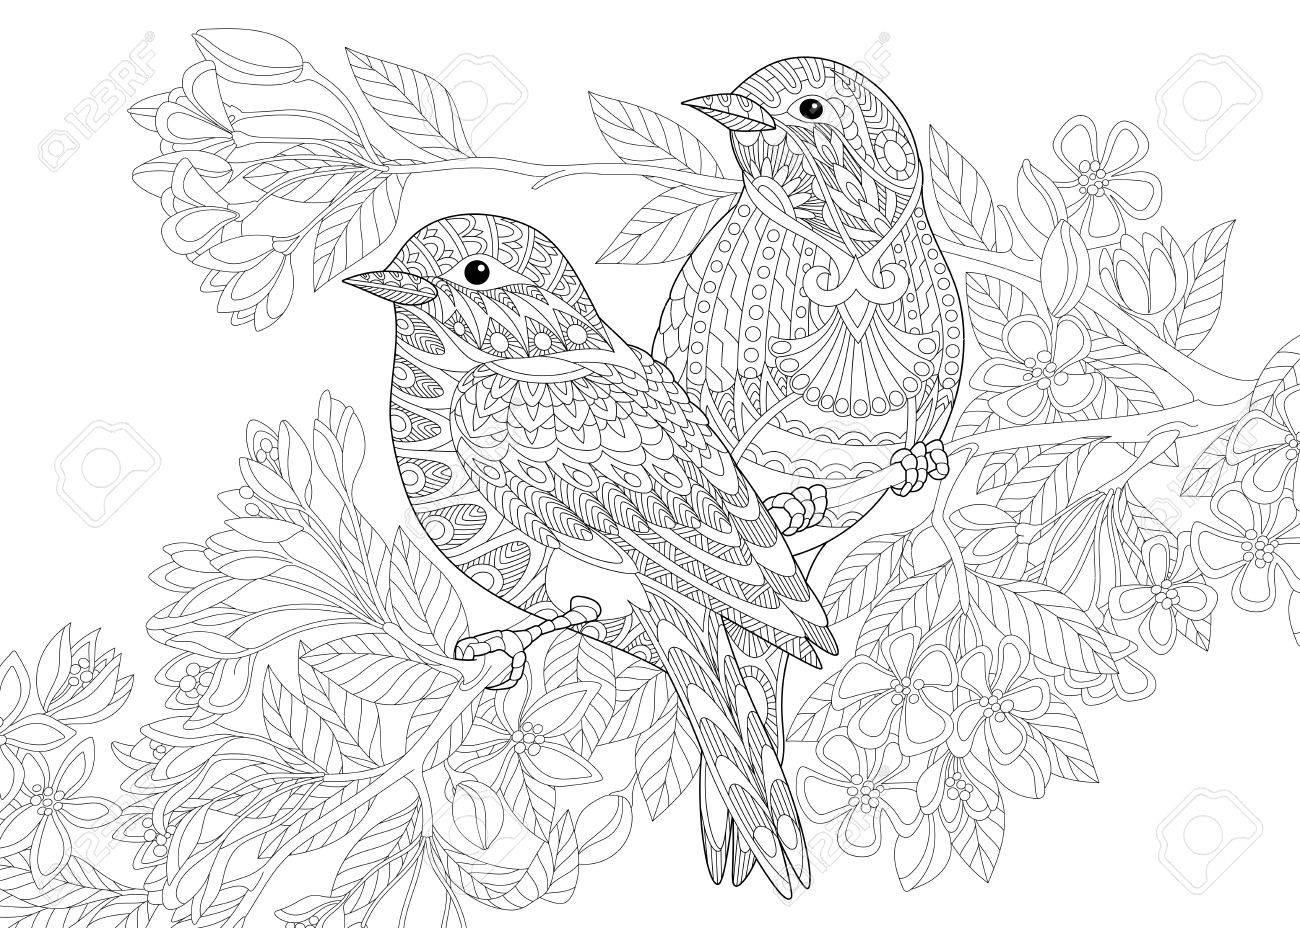 1300x928 Coloring Page Of Two Birds. Freehand Sketch Drawing For Adult